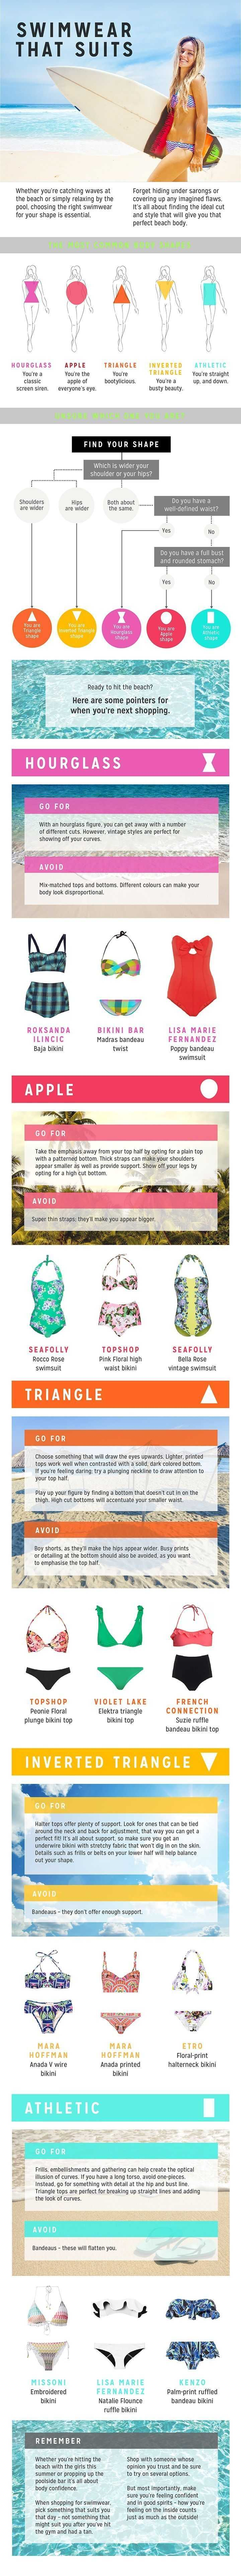 Swimwear That Suits Infographic